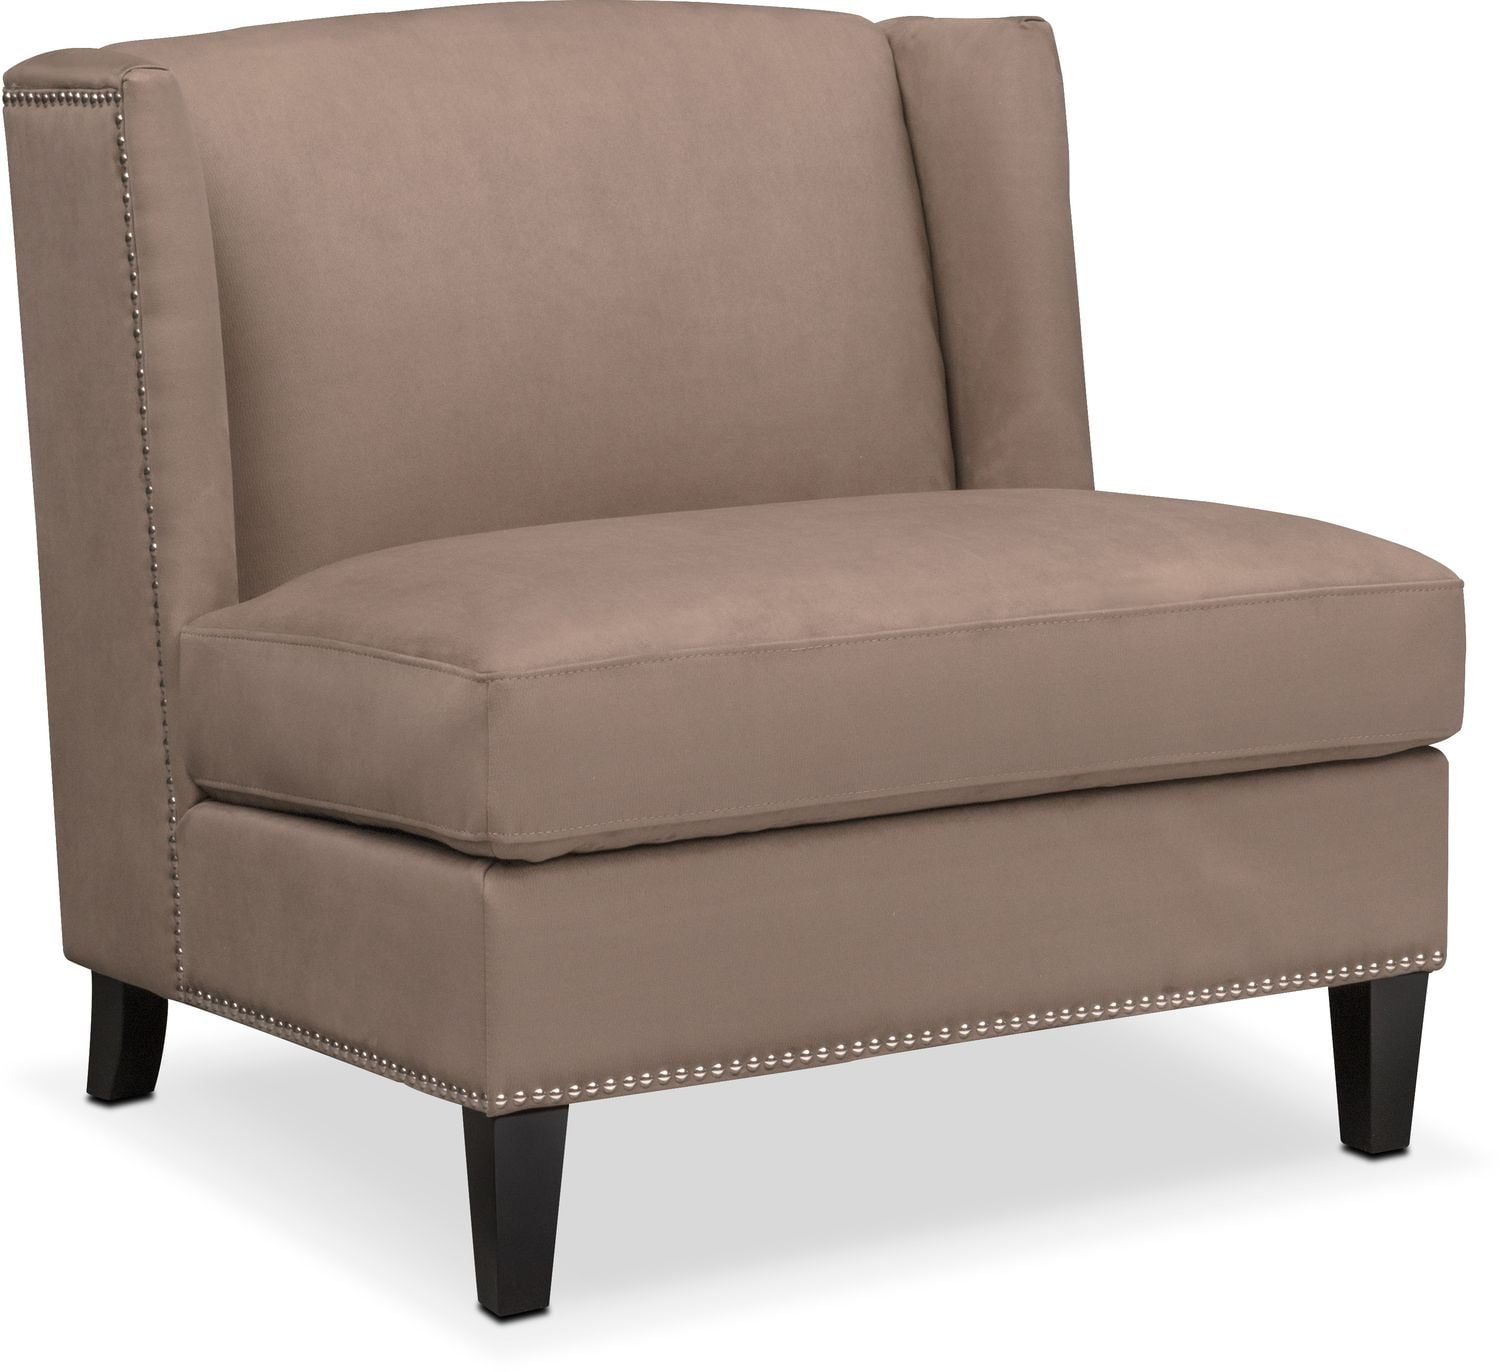 Living Room Furniture - Torrance Accent Chair